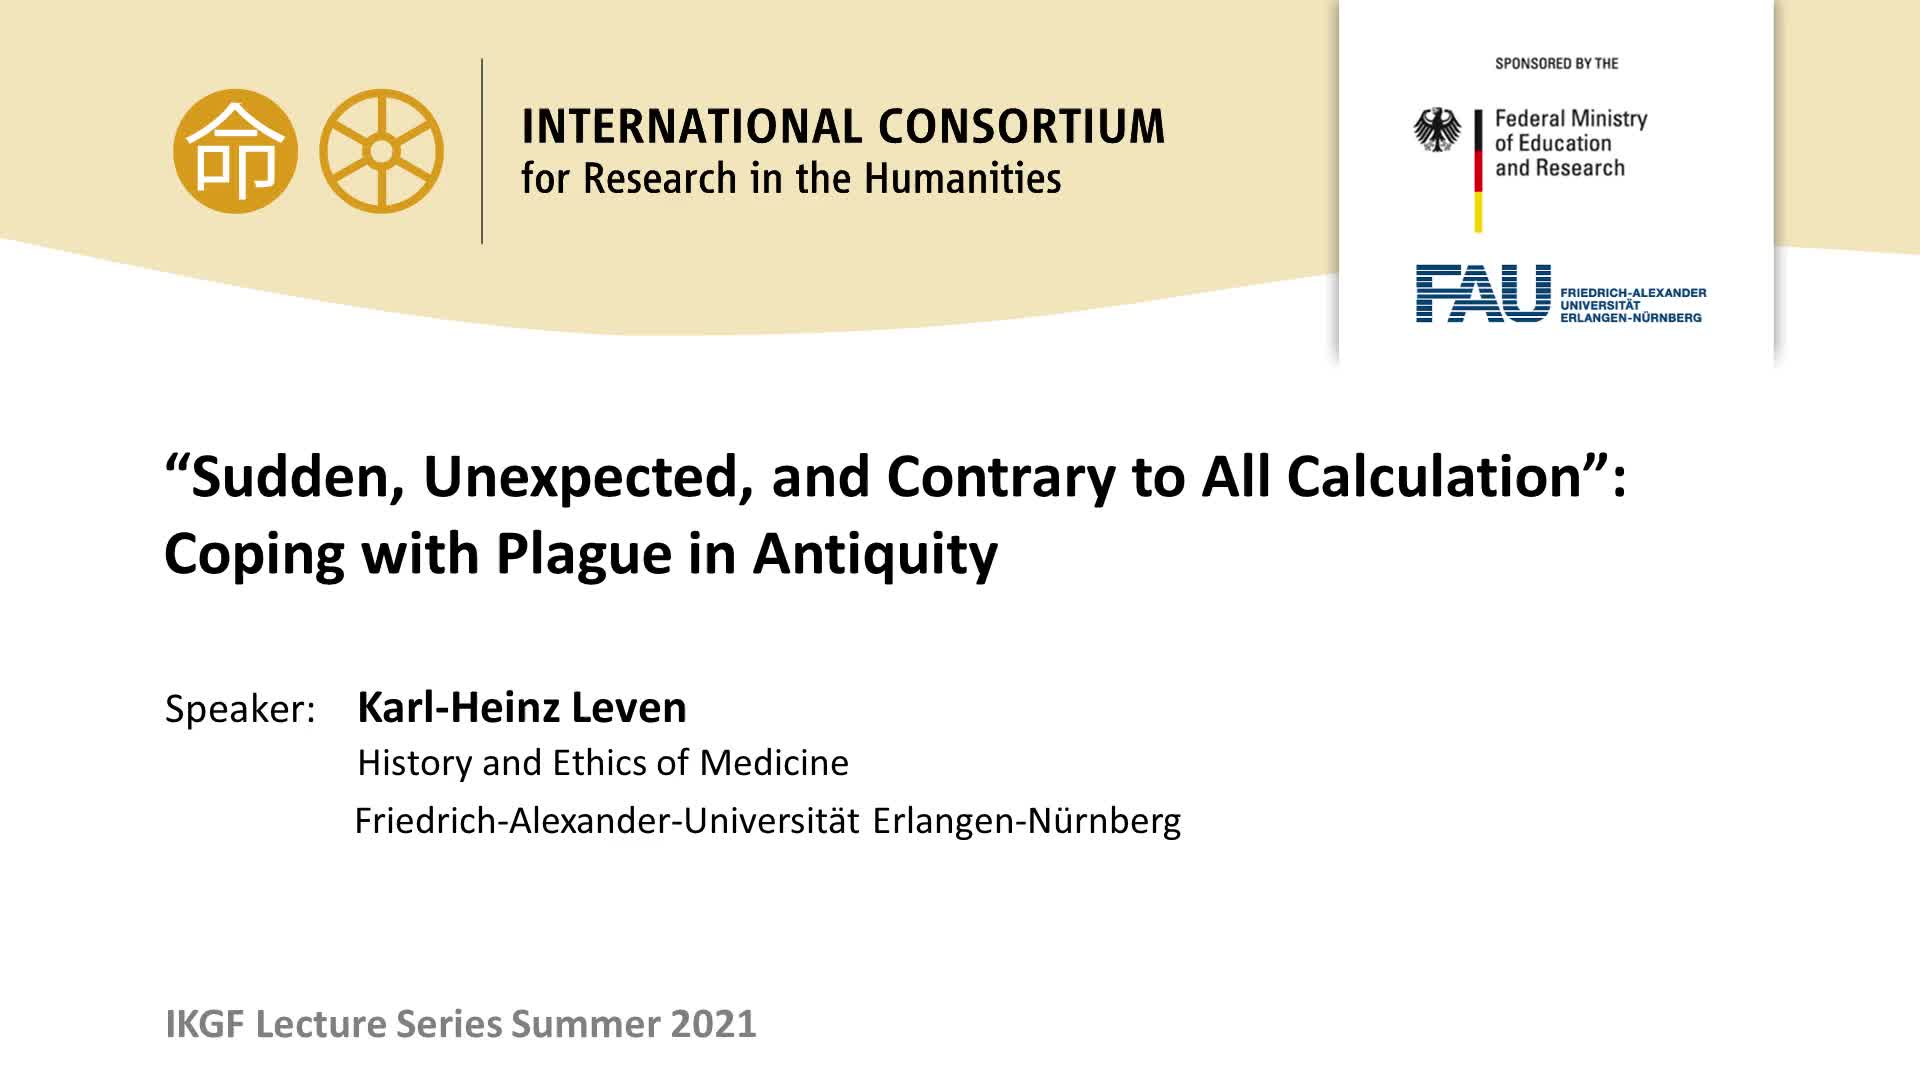 """""""Sudden, Unexpected, and Contrary to All Calculation"""": Coping with Plague in Antiquity preview image"""